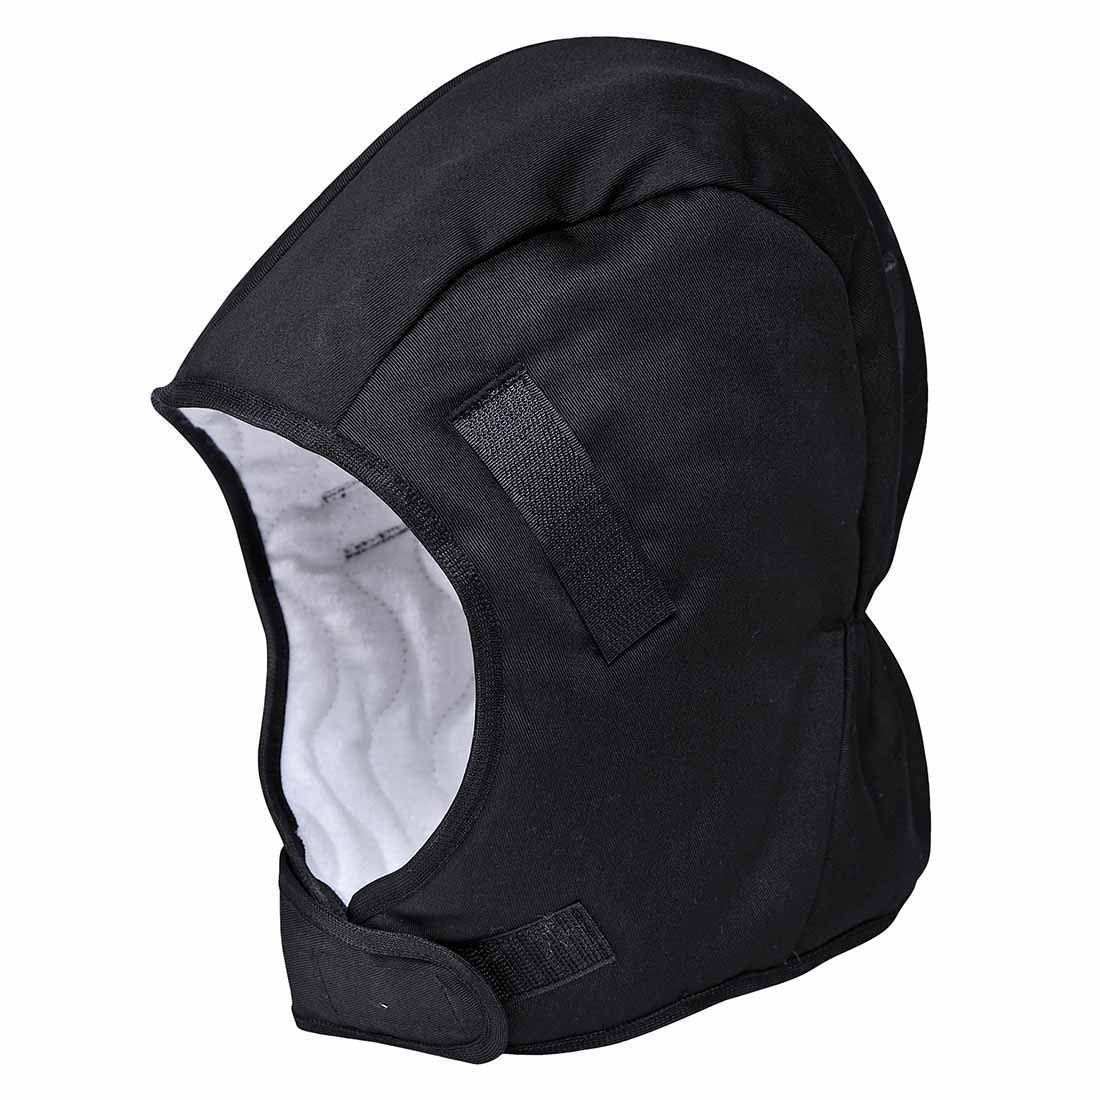 Portwest PA58NAR Series PA58 Helmet Winter Liner, Regular, Navy Portwest Clothing Ltd